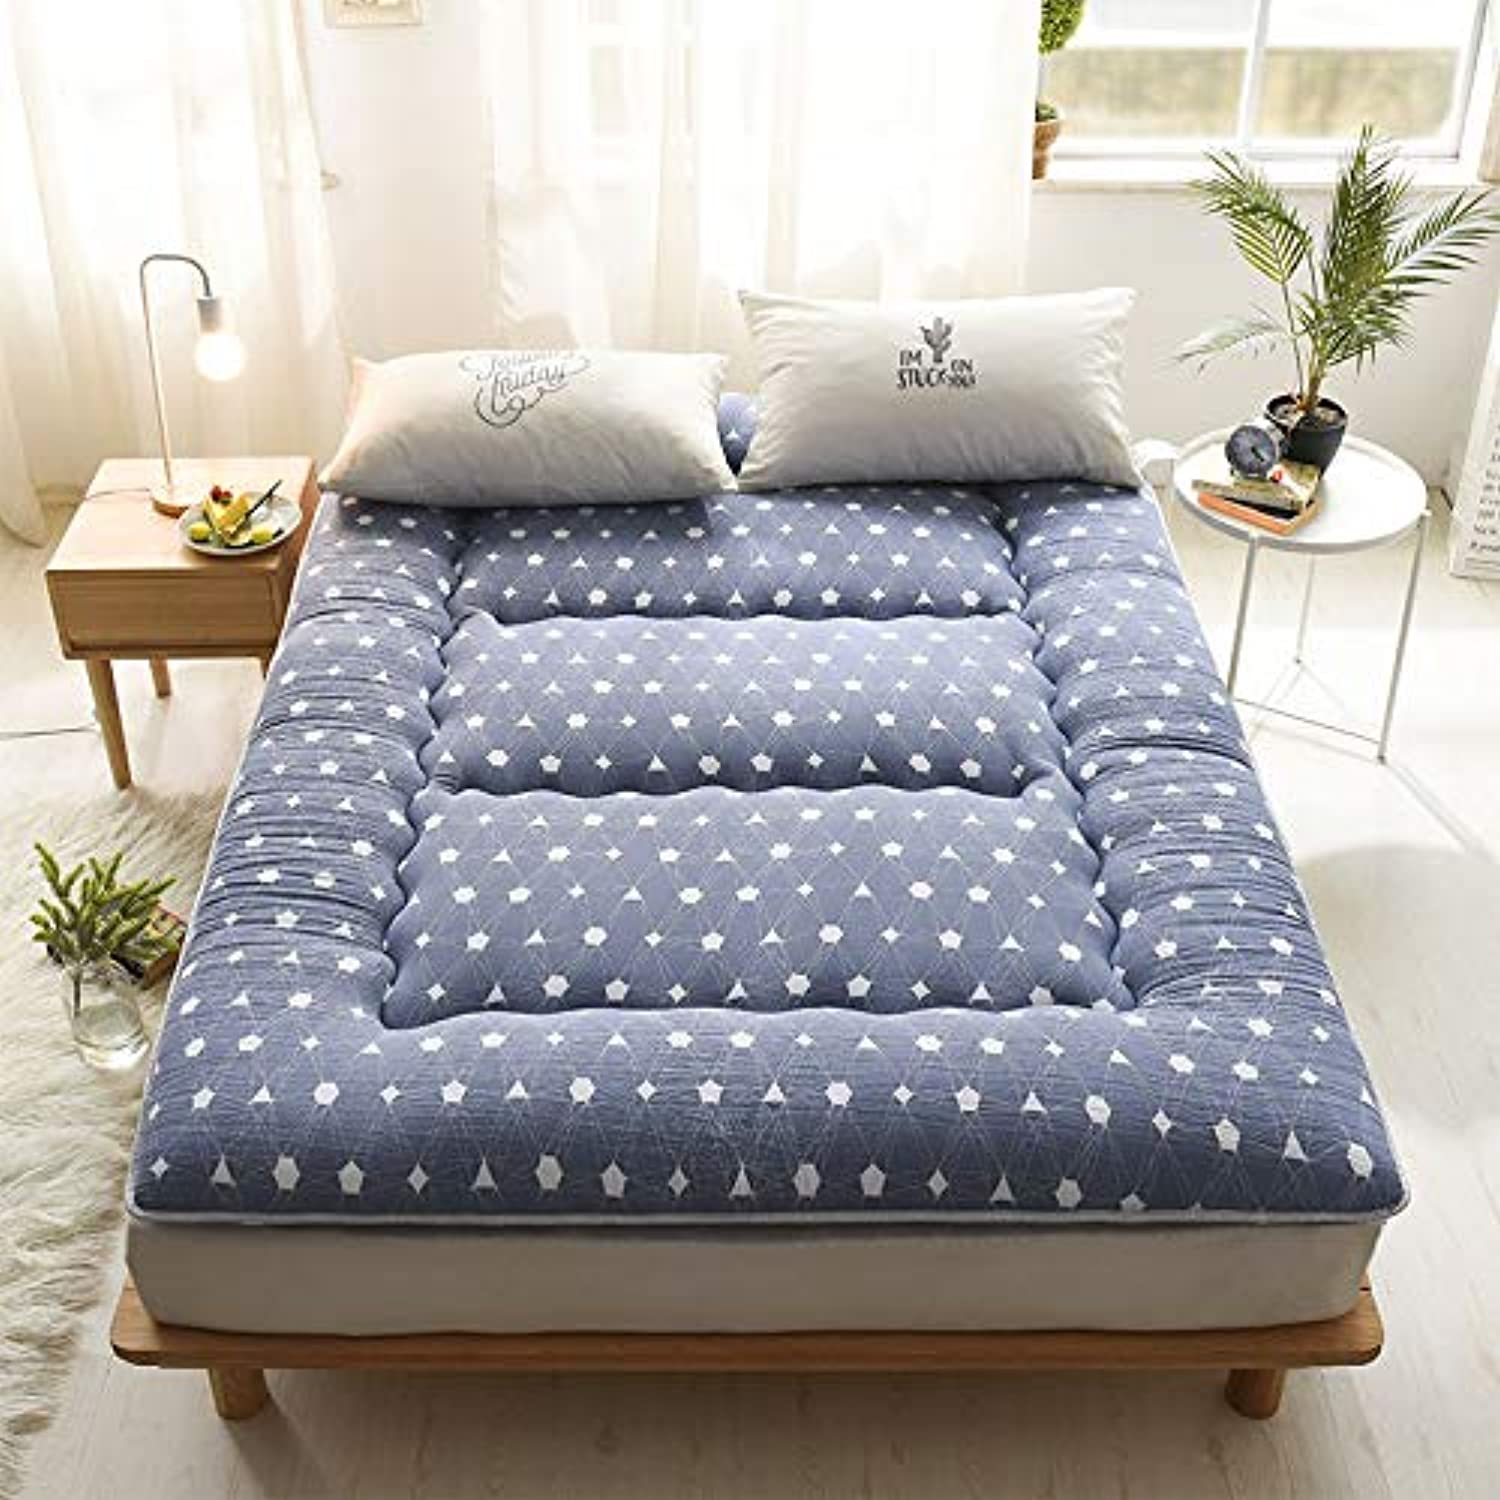 Foldable Sleeping Topper Mattress futon Japanese mat ...